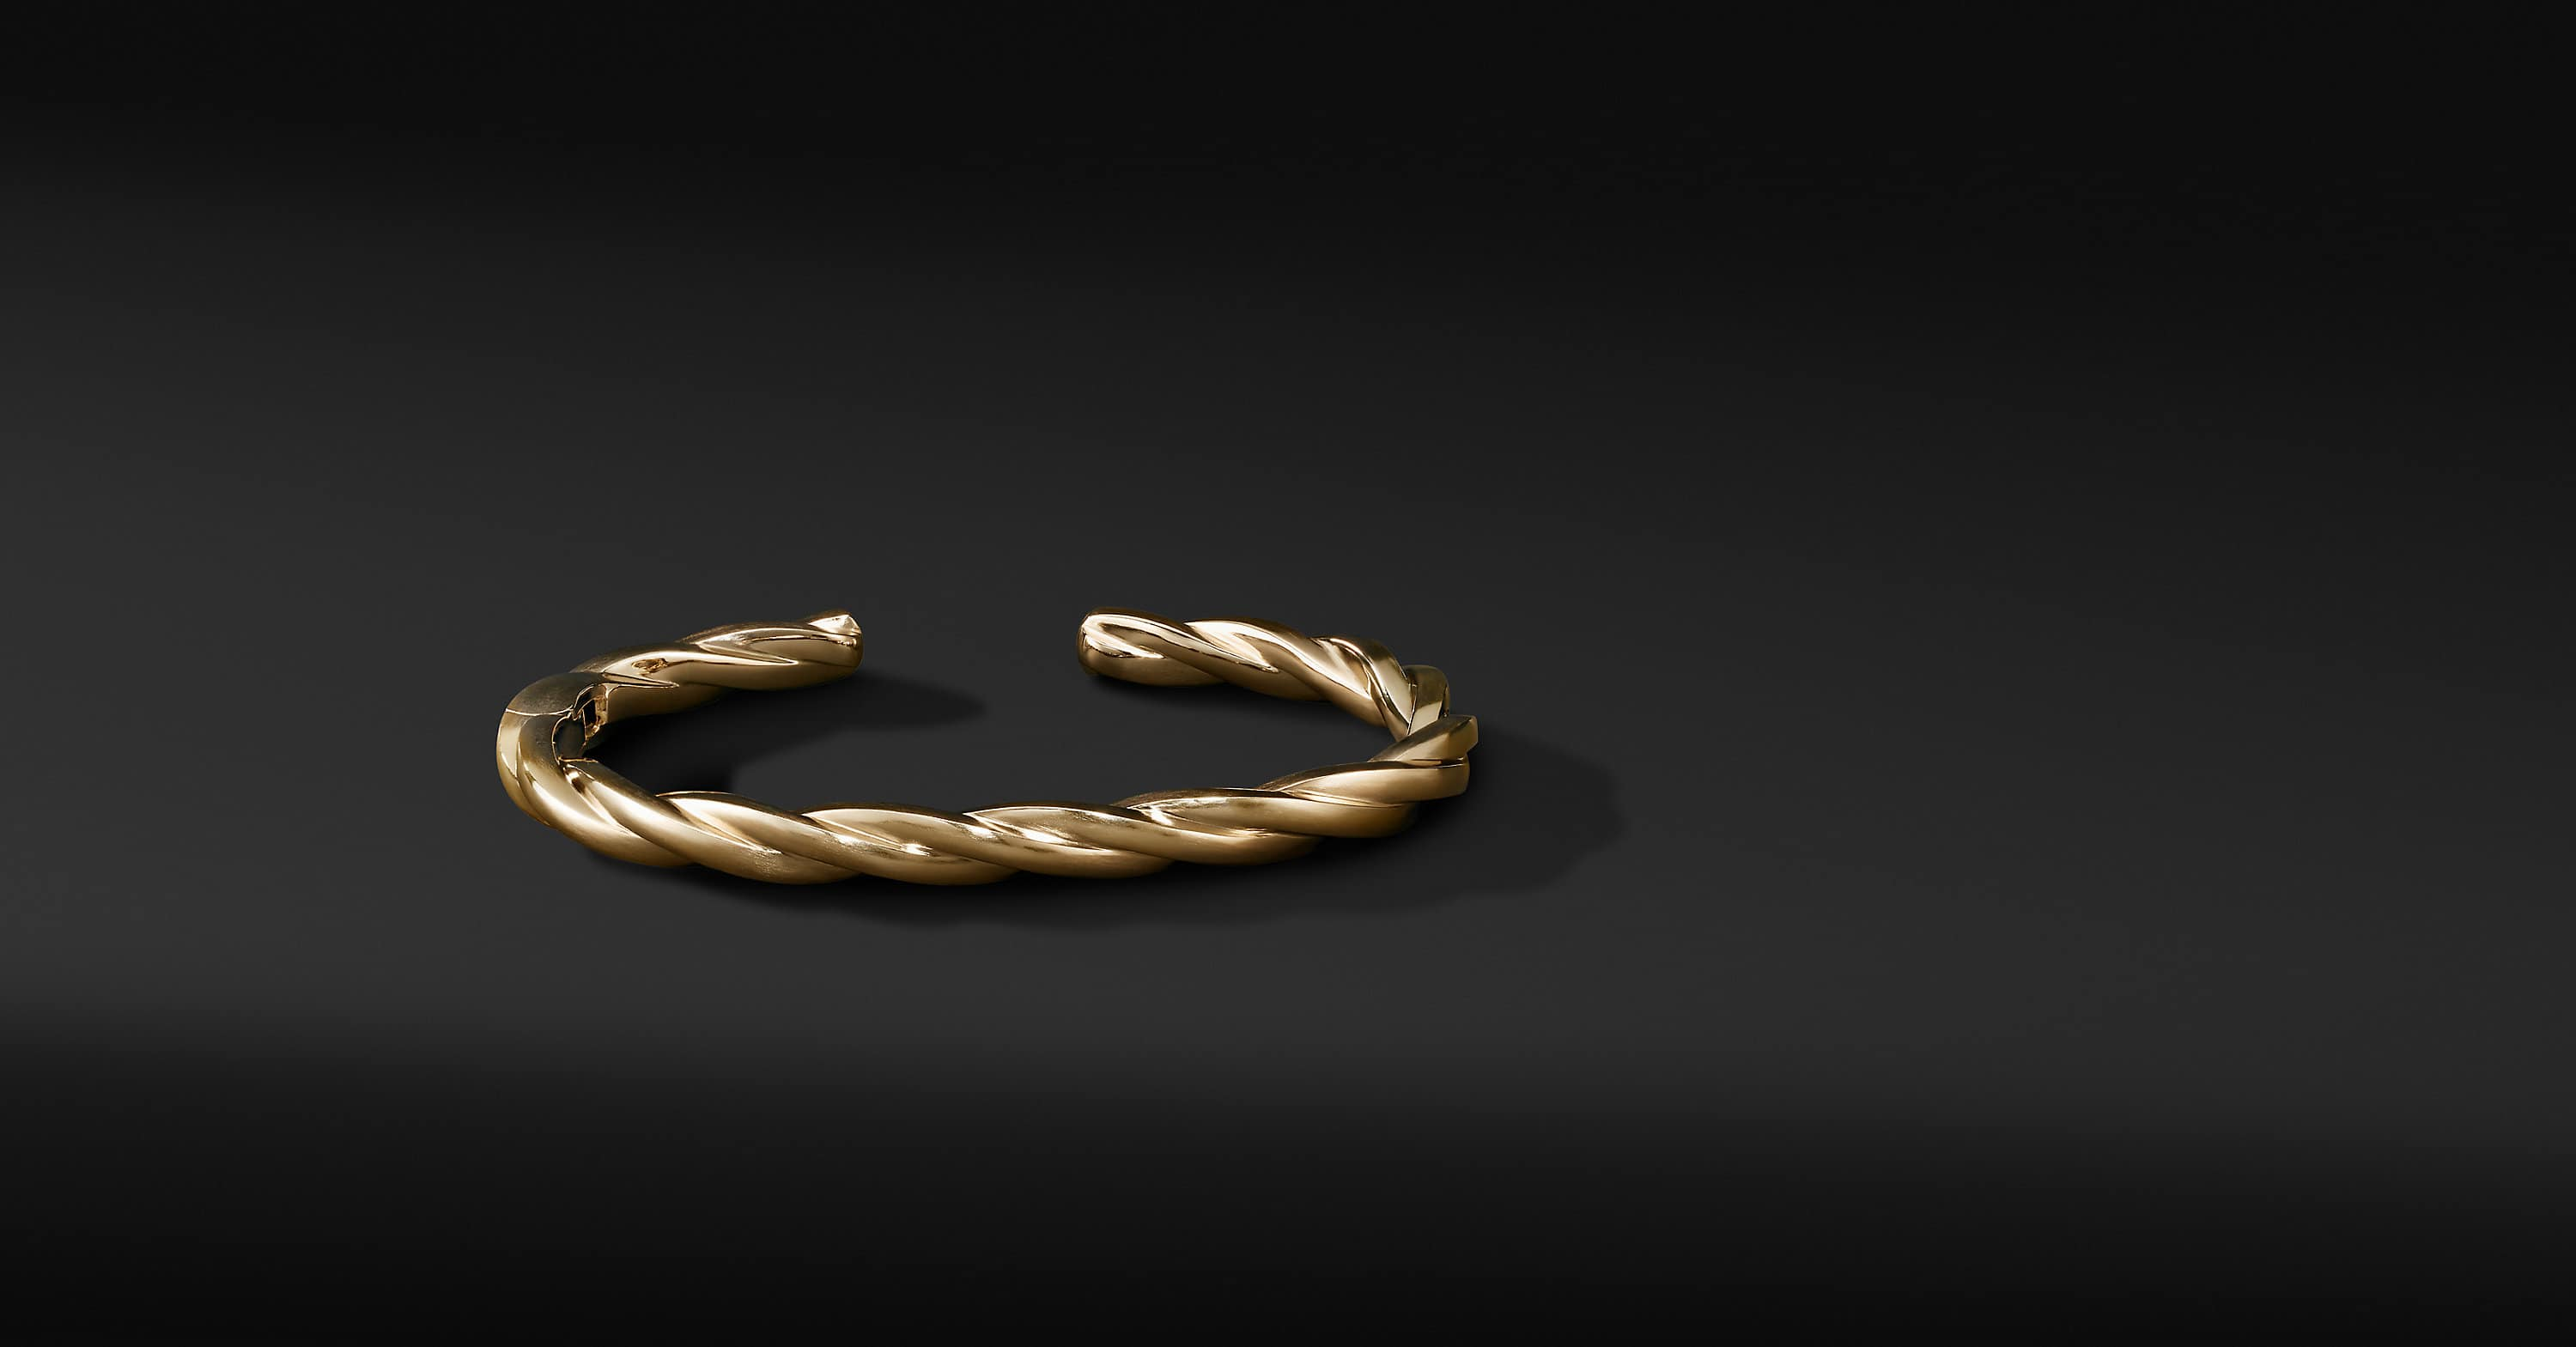 Narrow Twisted Cable Cuff Bracelet in 18K Yellow Gold